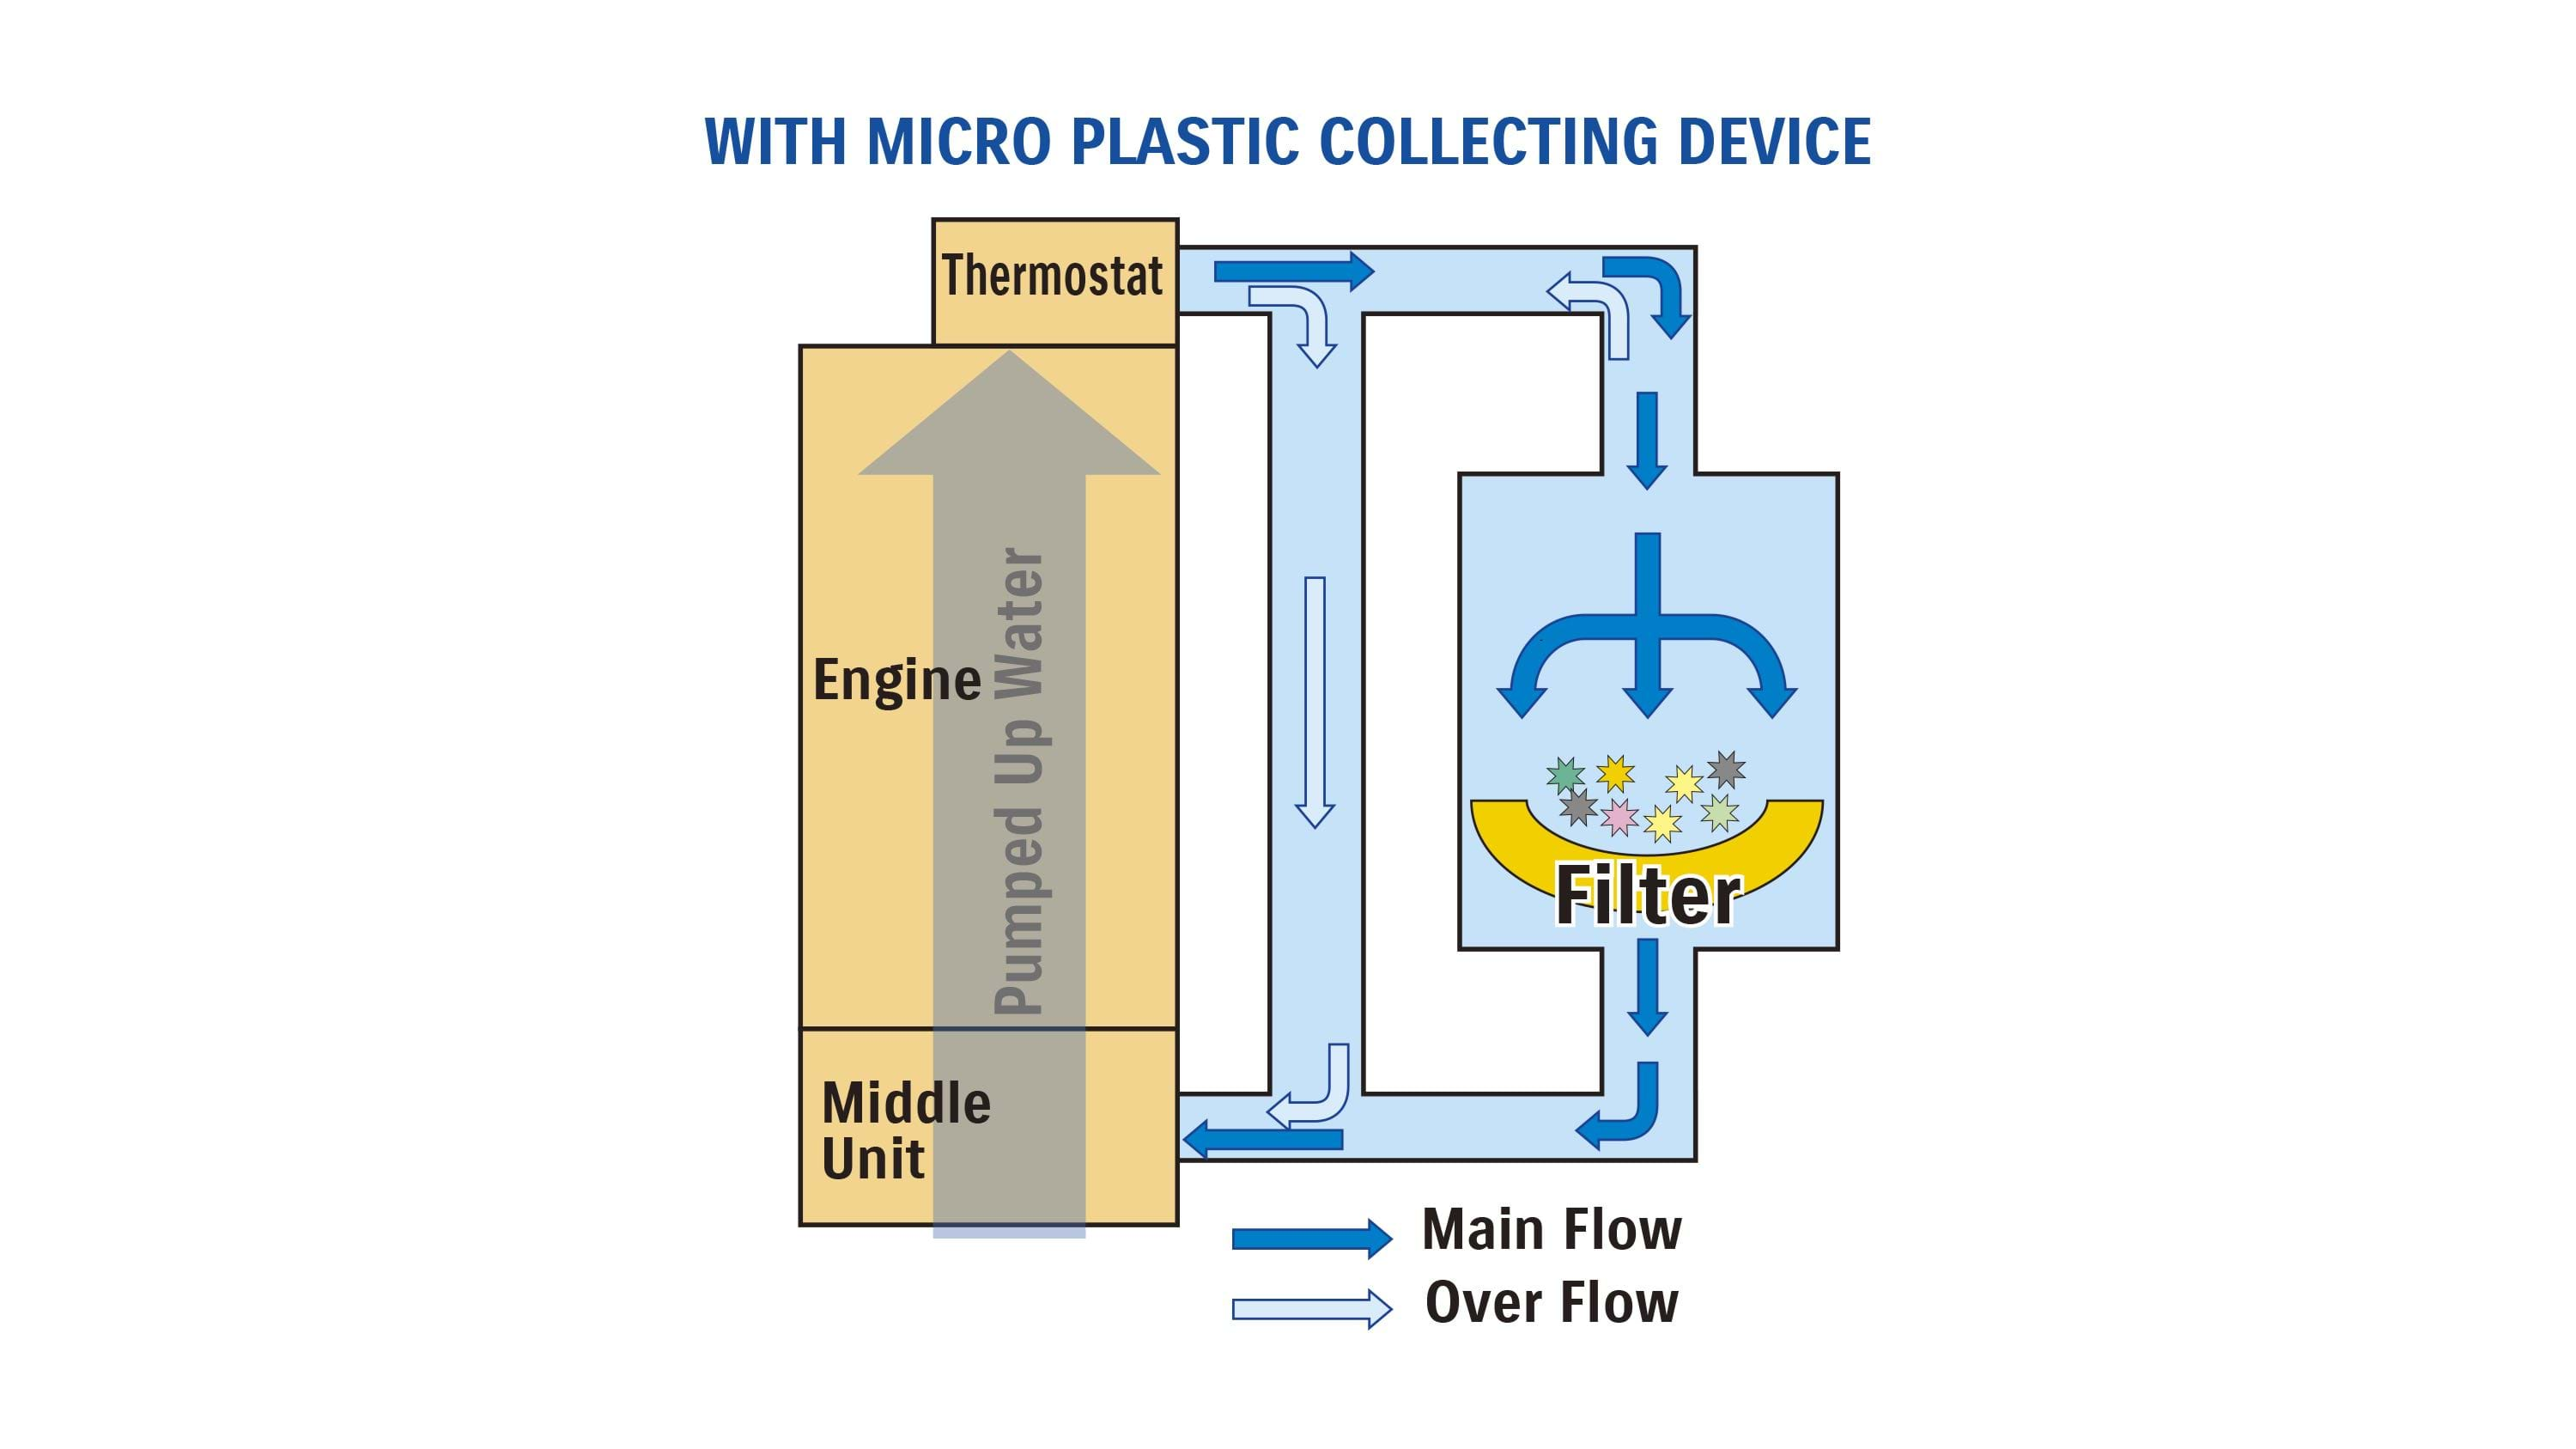 Diagram showing how Suzuki's new micro-plastic collection device works